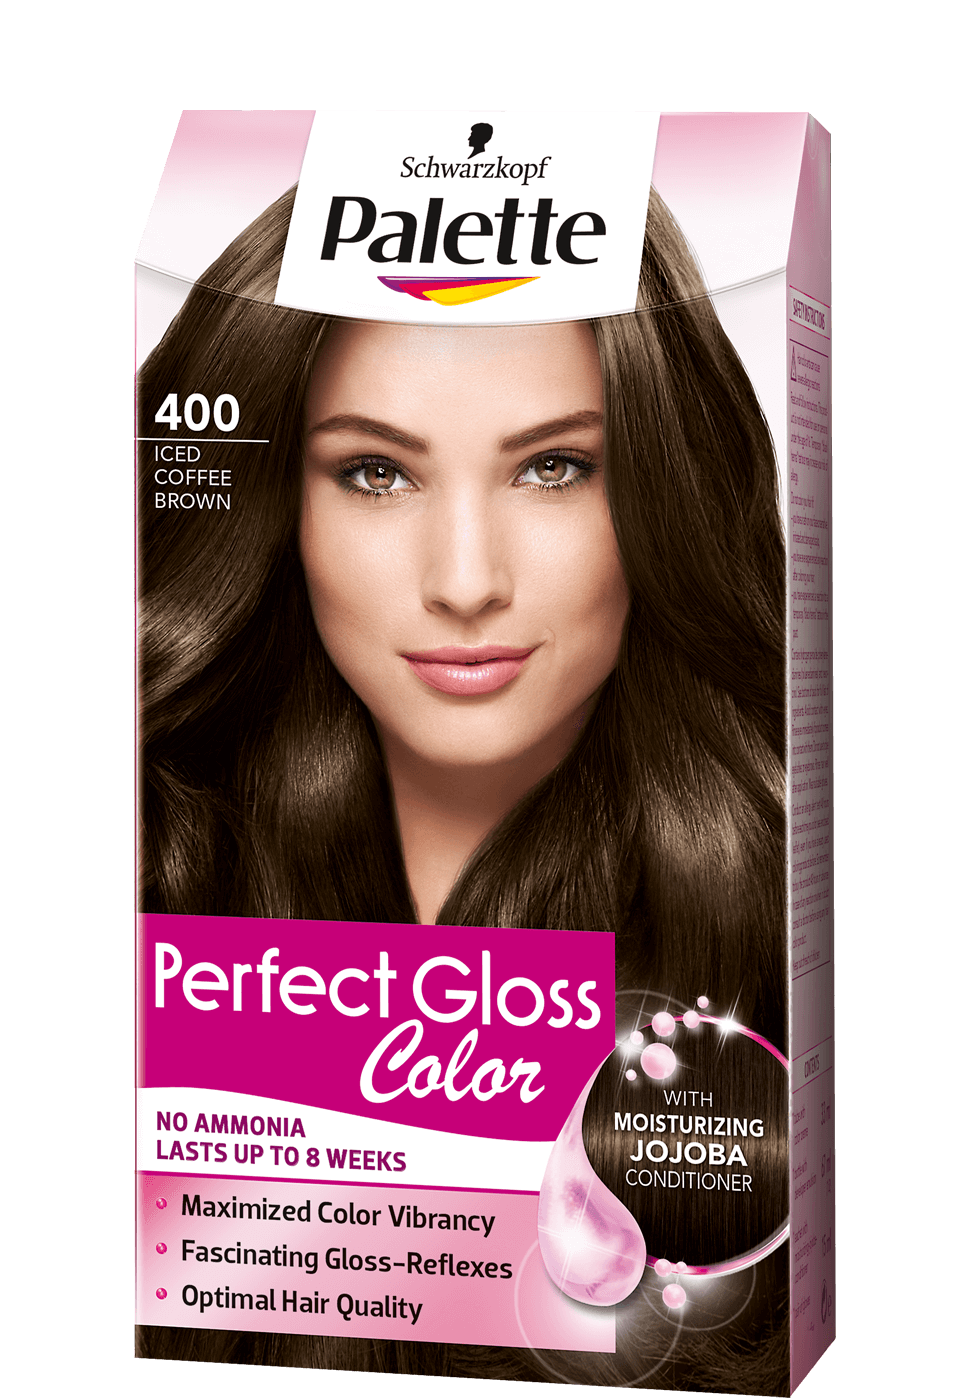 palette_com_gc_baseline_400_iced_coffee_brown_970x1400